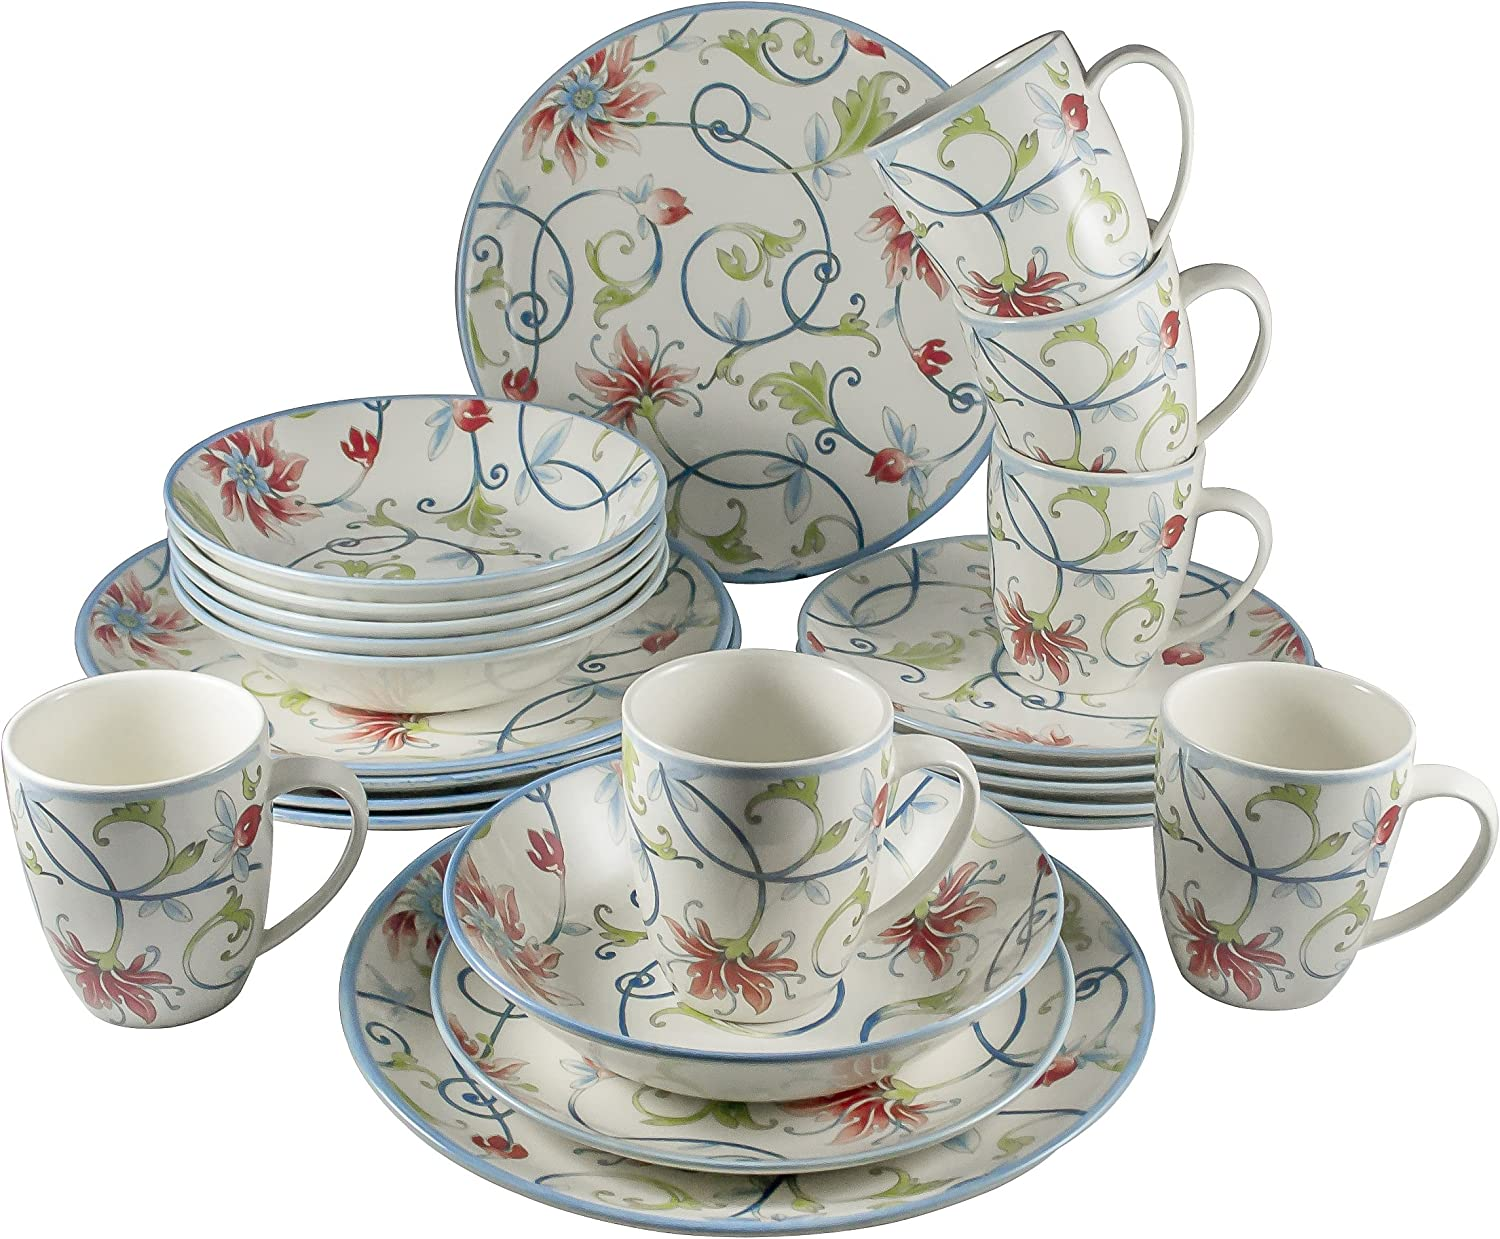 Tudor Royal Collection 24 Piece Premium Quality Round Porcelain Dinnerware Set Service For 6 Botanical See 10 Designs Inside Dinnerware Sets Amazon Com